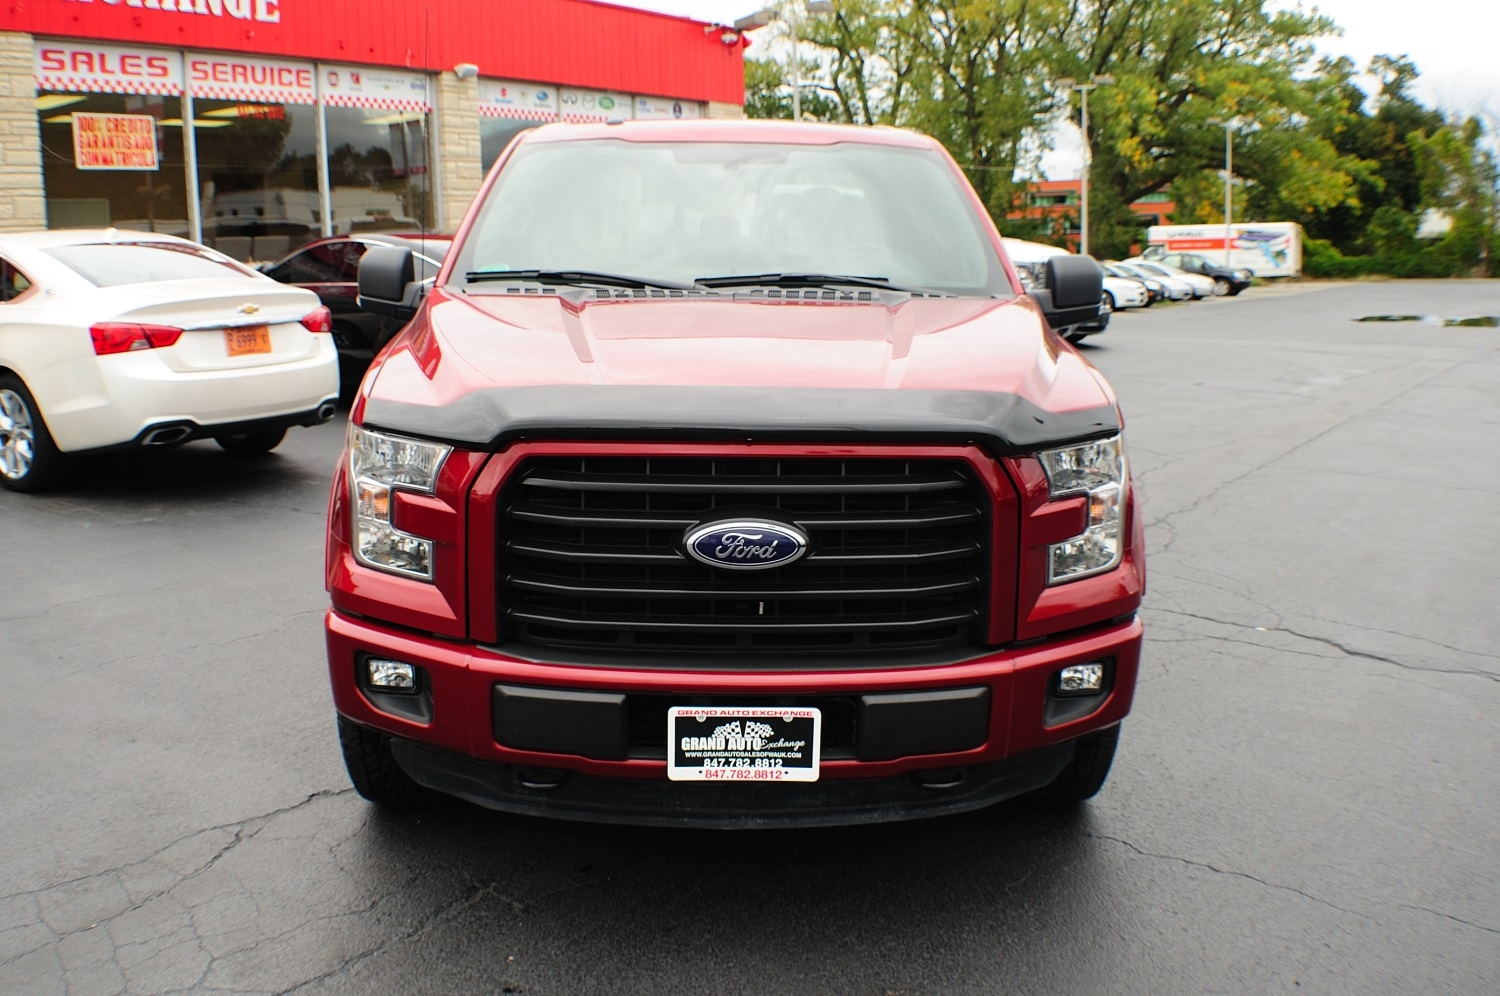 2015 Ford F150 XLT Red Used 4x4 Truck Sale Gurnee Kenosha Mchenry Chicago Illinois